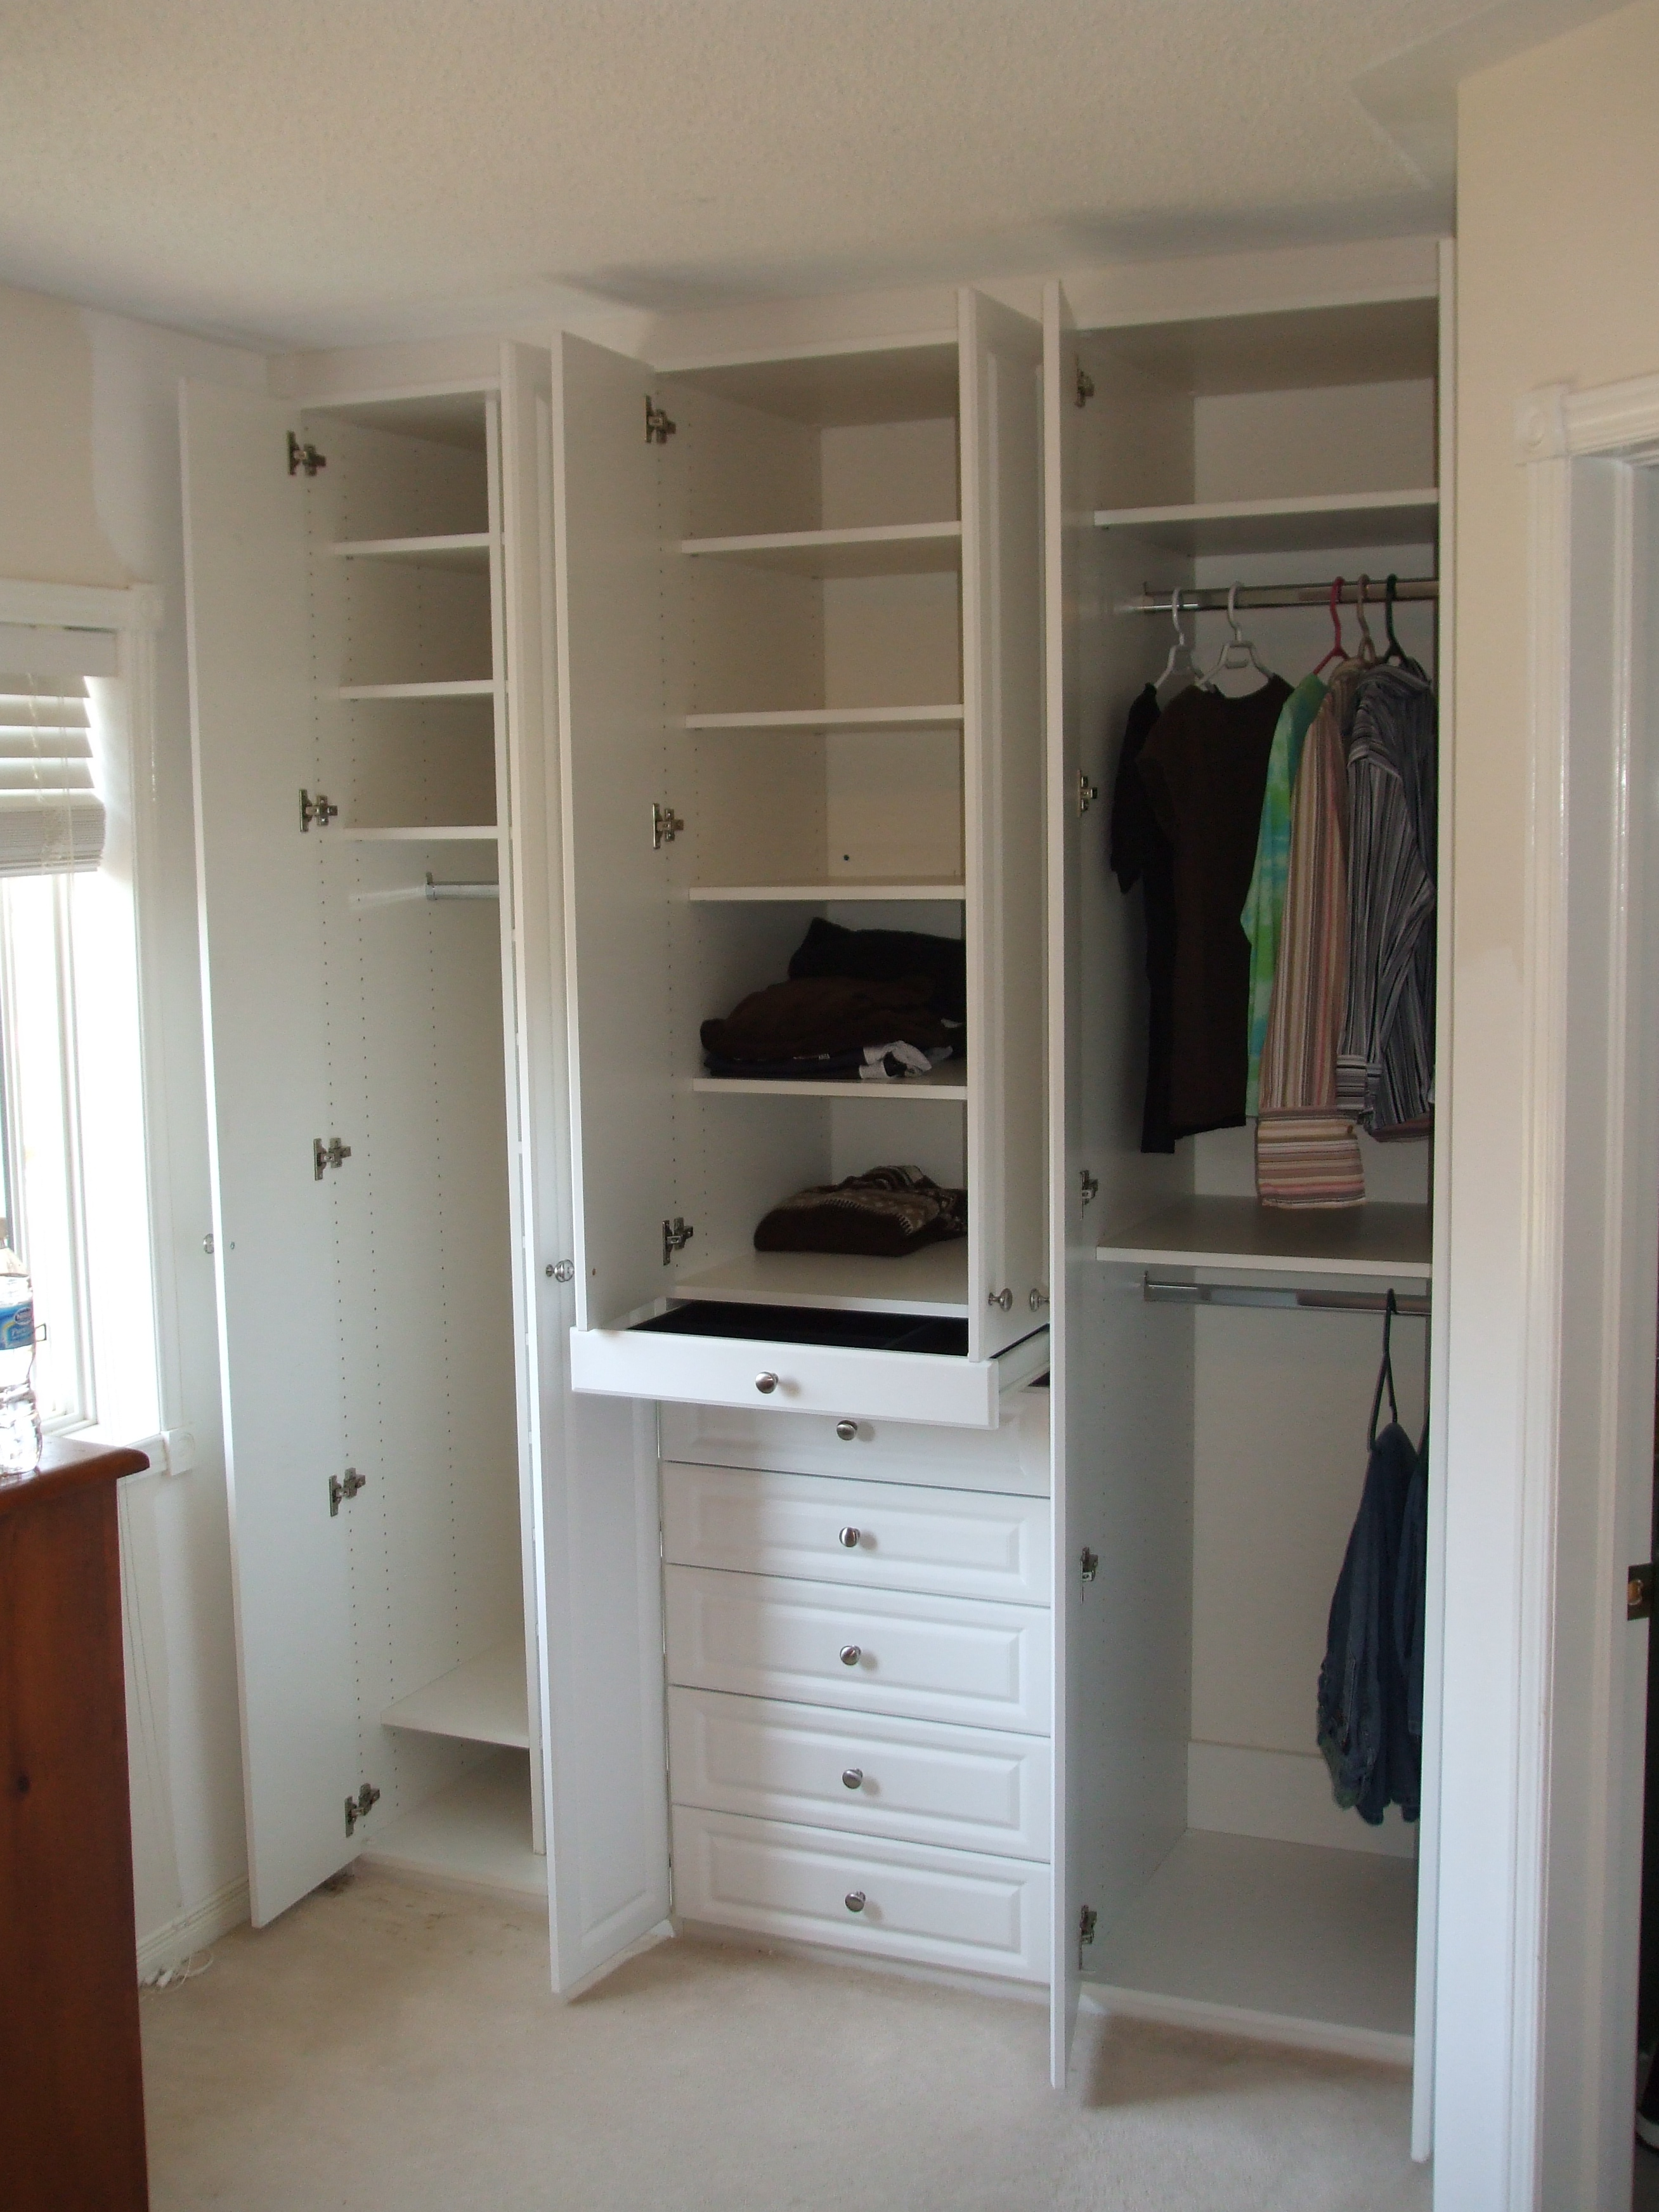 built olsen replacement chocolate closet commercial modern mirror reach in precision pear closets and glass